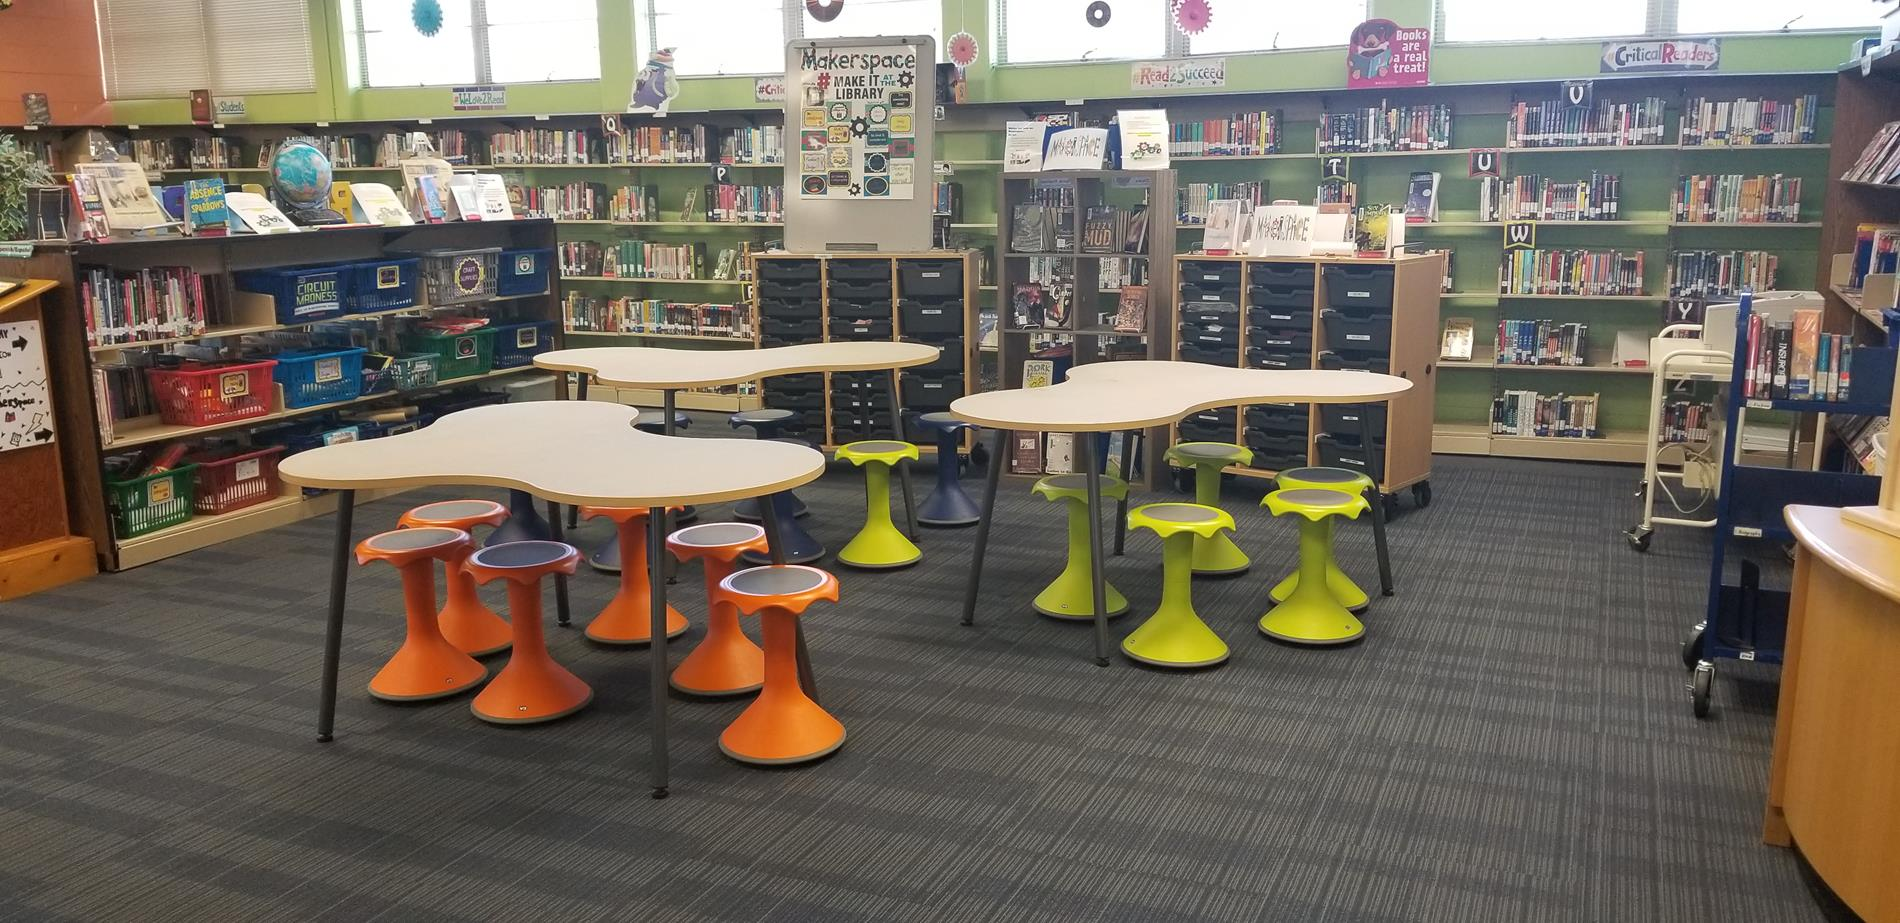 Makerspace area with tables and wobble stools